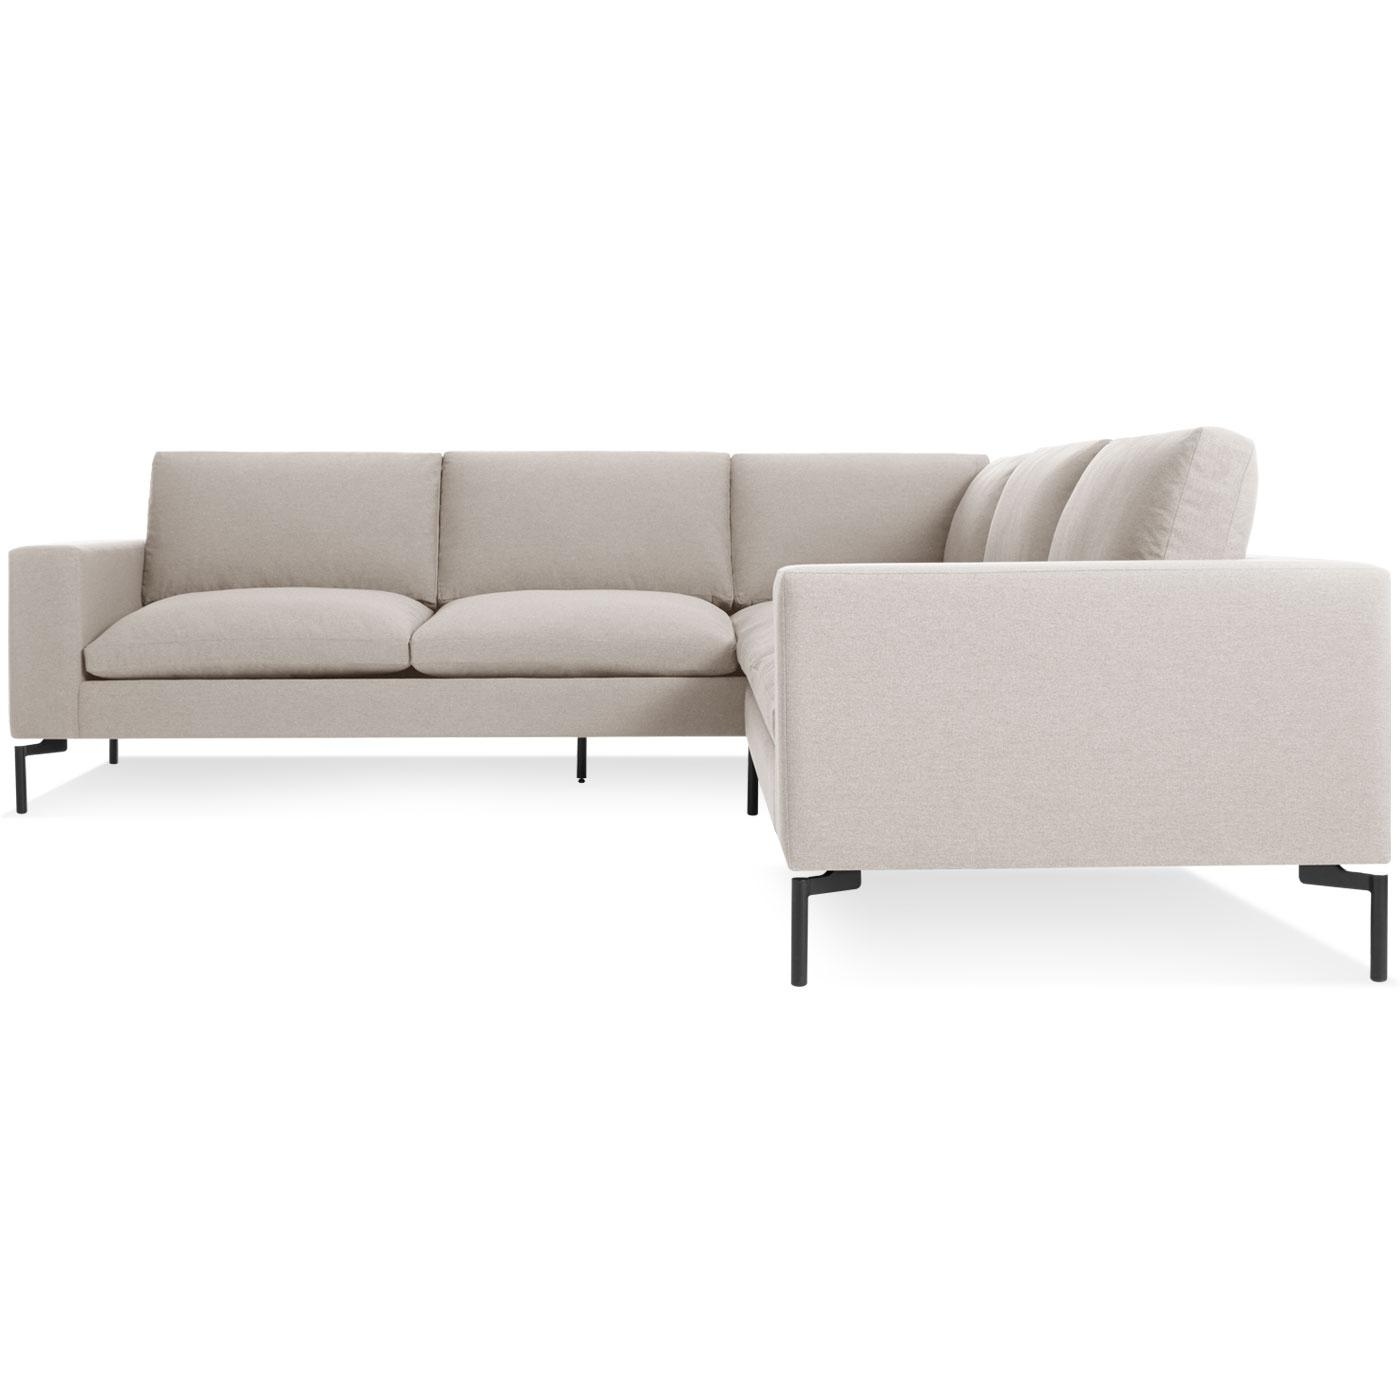 New Standard Small Sectional Sofa – Modern Sofas | Blu Dot Within Modern Small Sectional Sofas (Image 15 of 20)